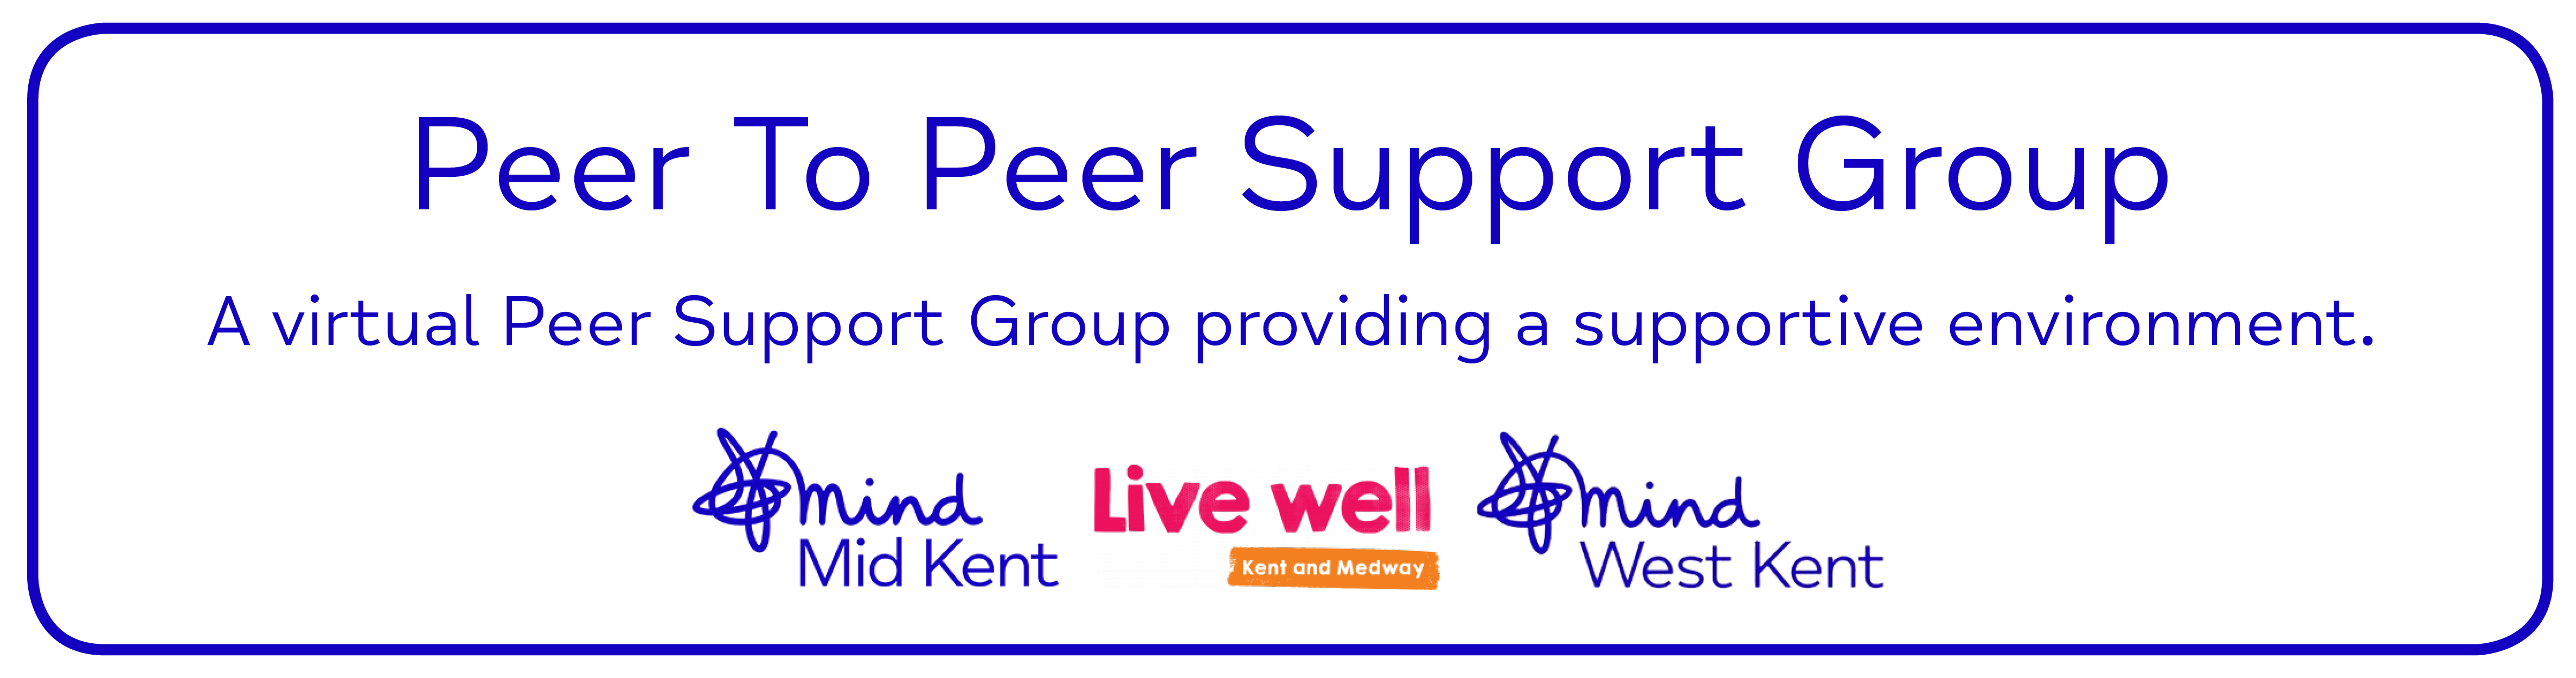 Peer To Peer Support Group A virtual Peer Support Group providing a supportive environment.